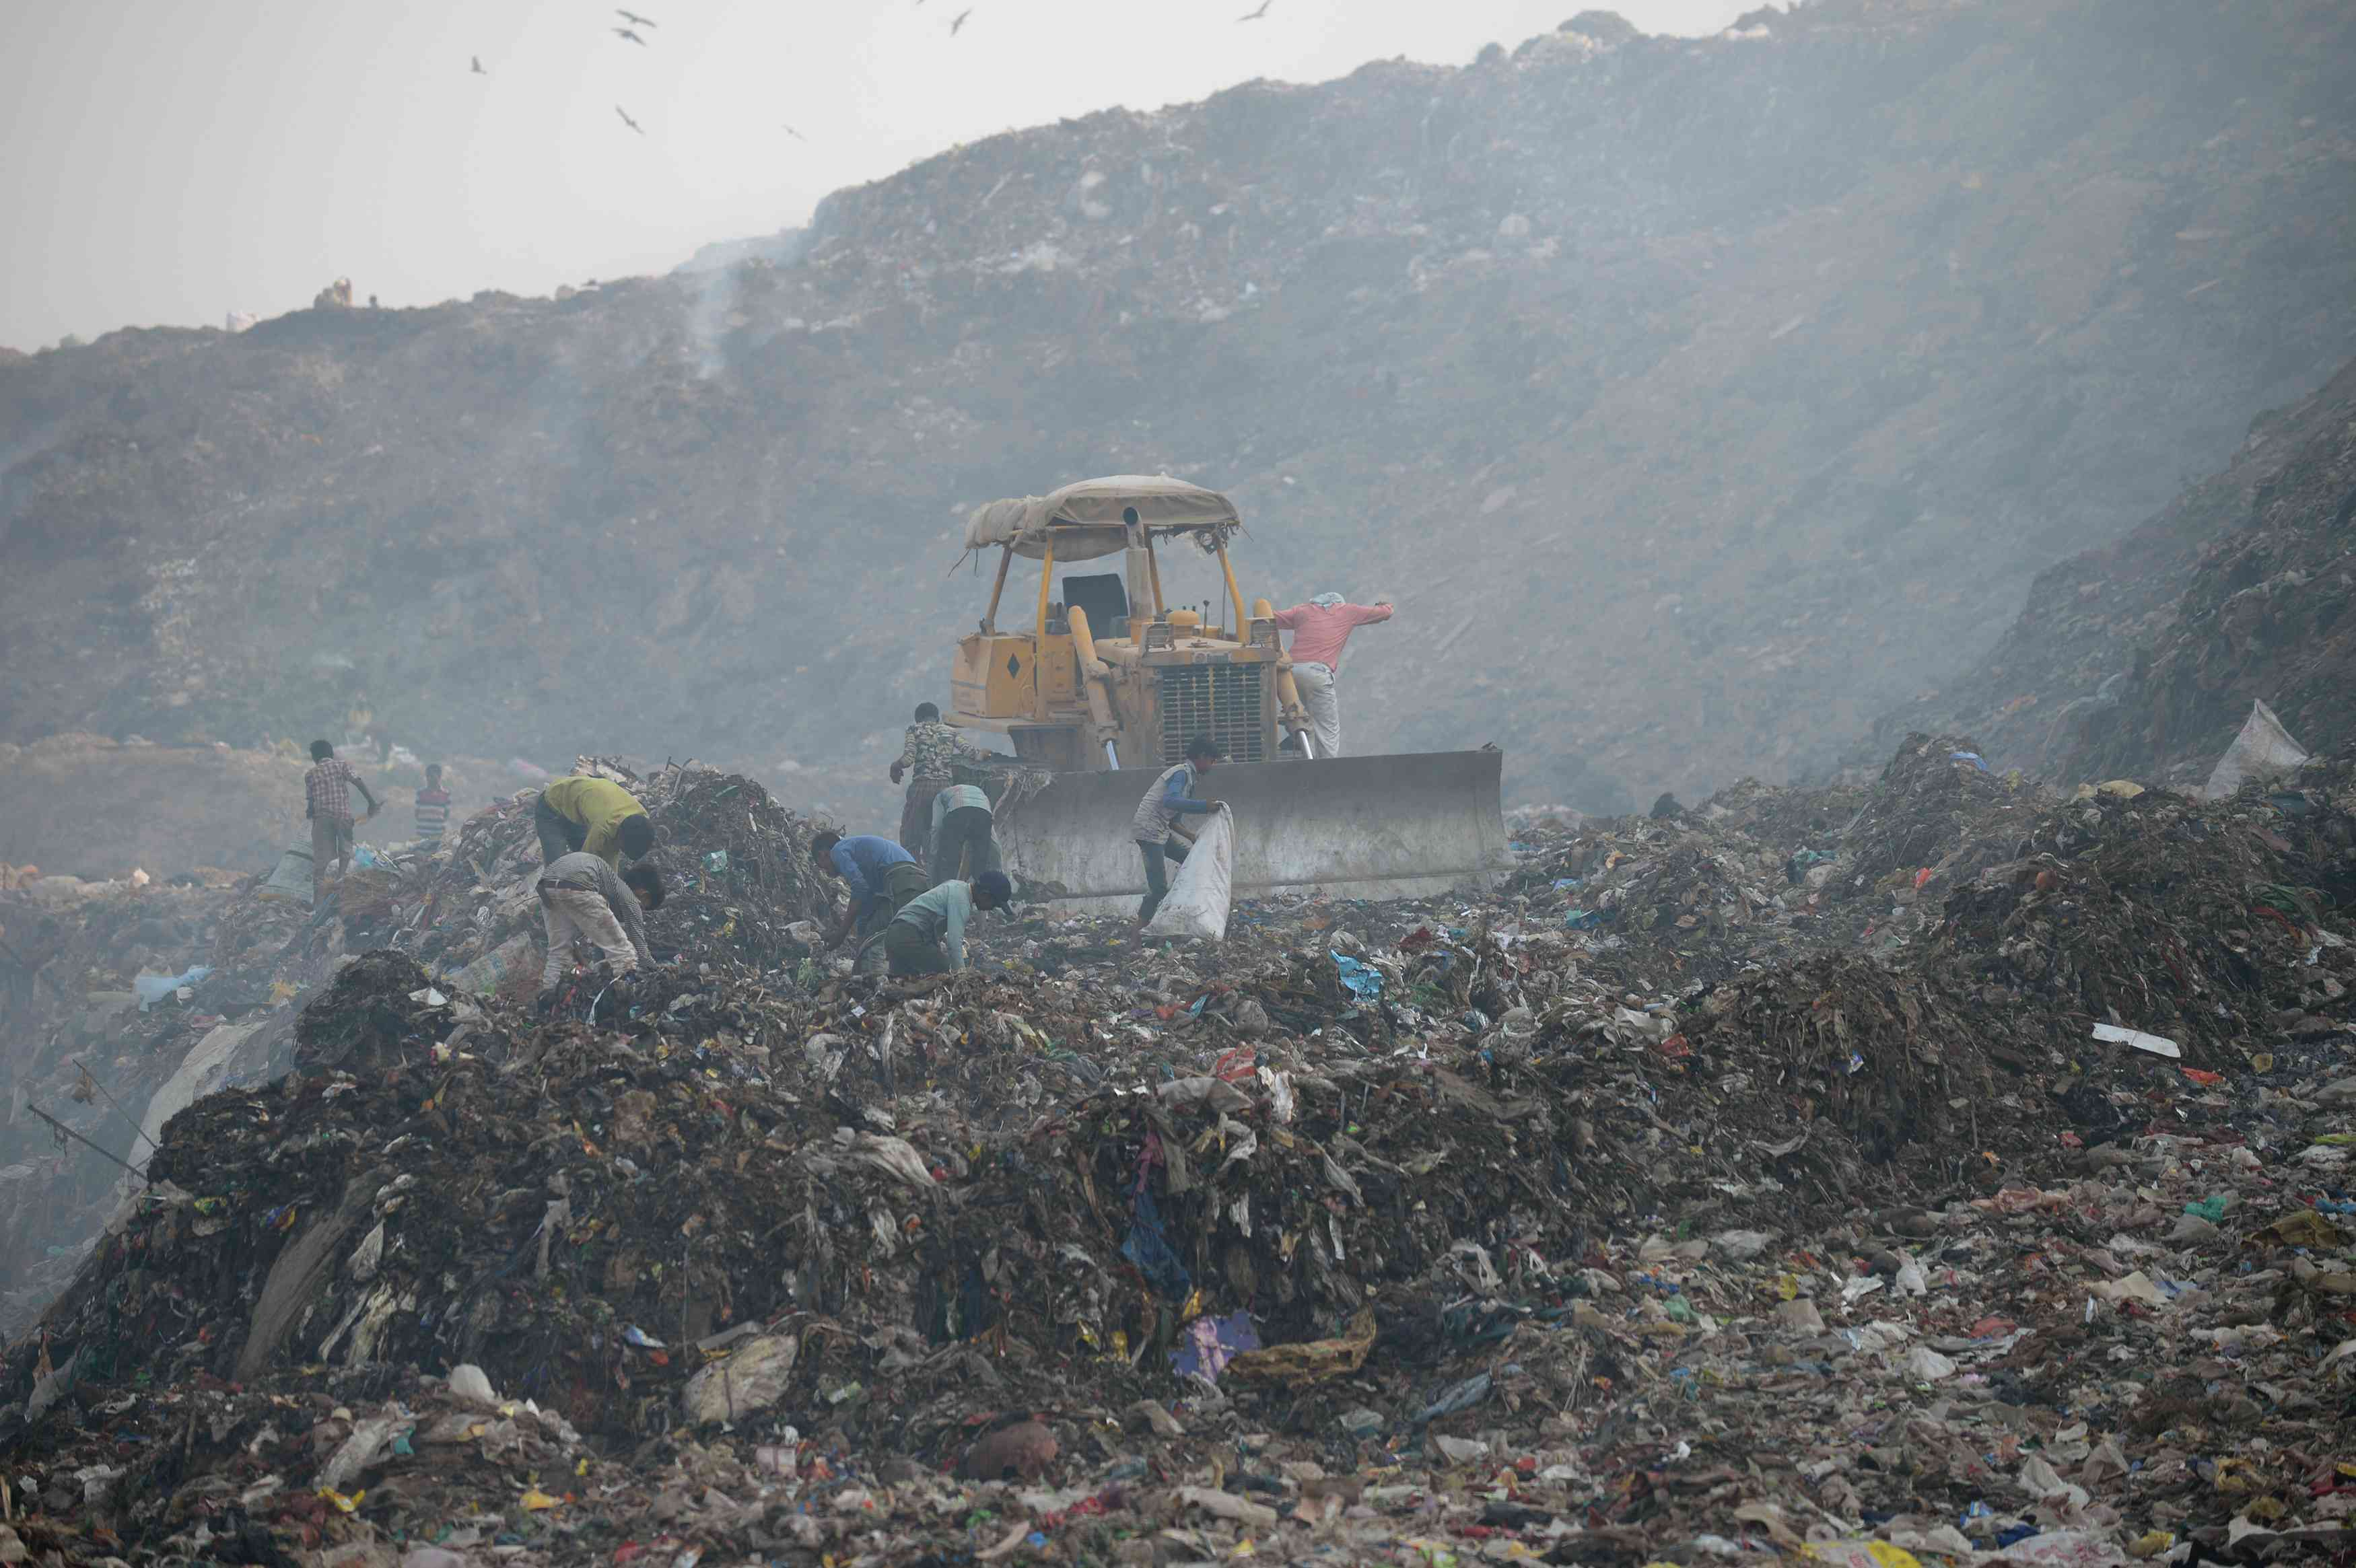 Scenes from the Bhalswa landfill. Credit: Sajjad Hussain/AFP